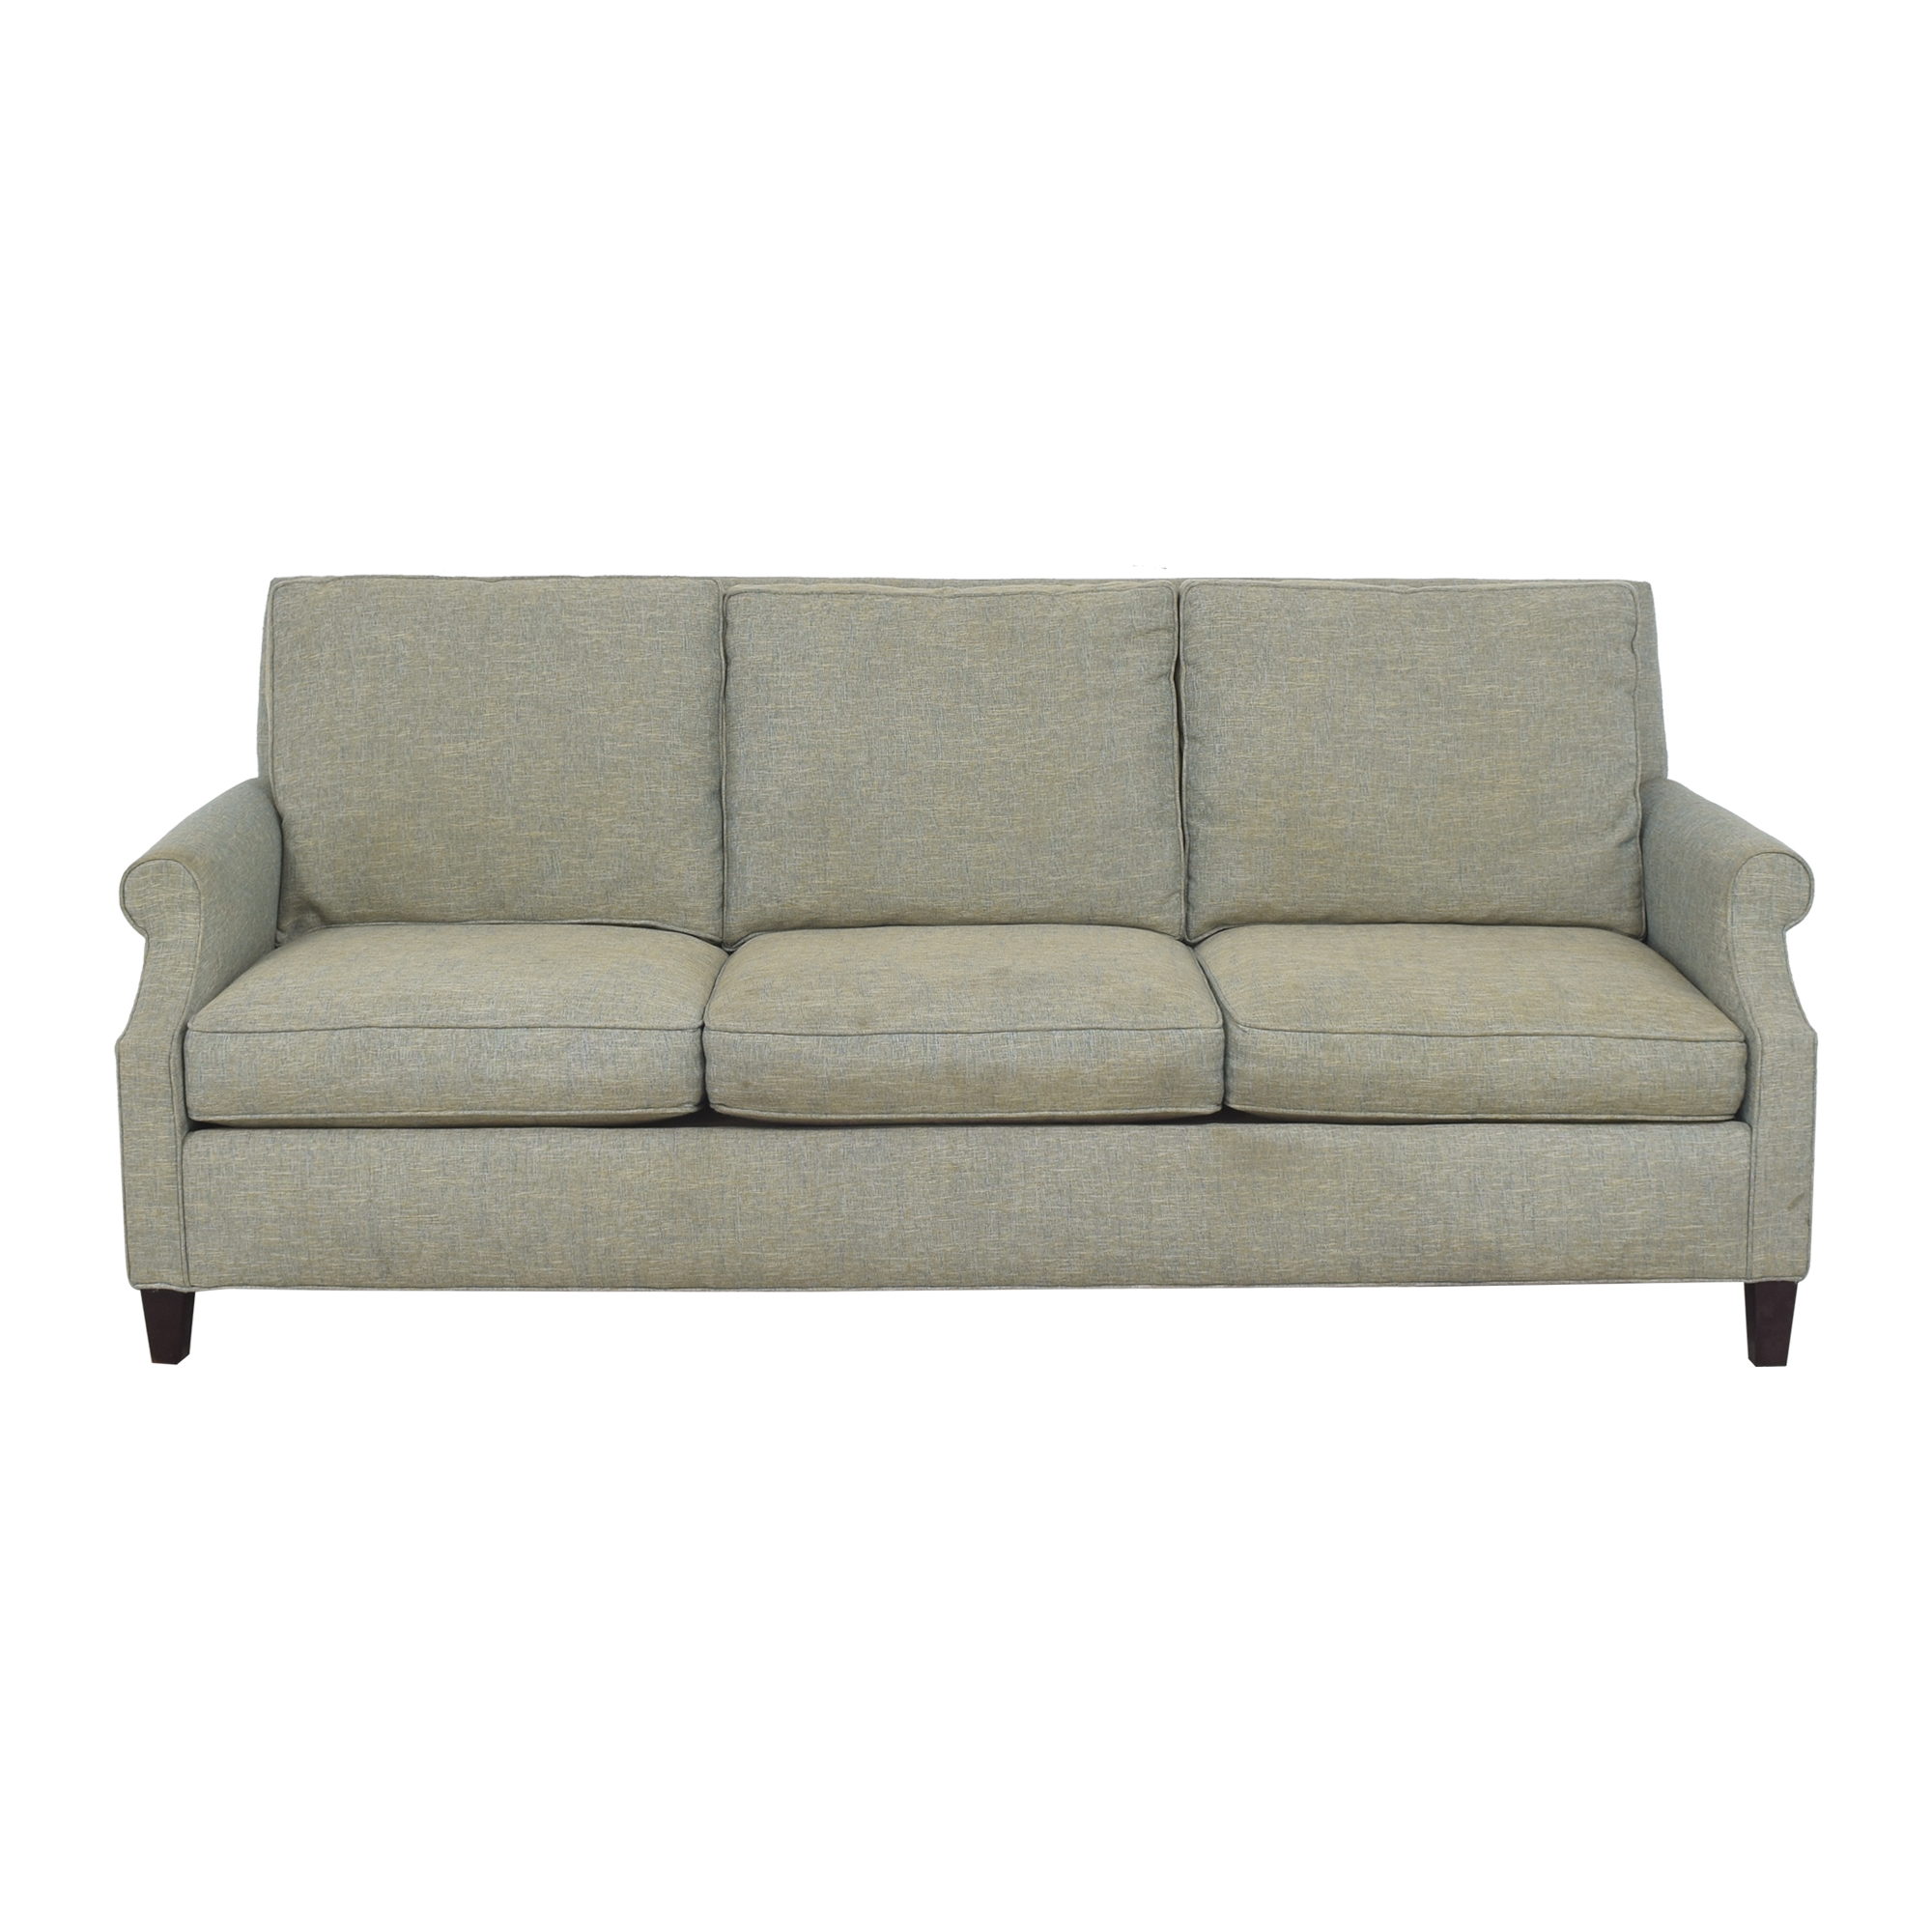 shop Stickley Furniture Natick Sofa Stickley Furniture Sofas